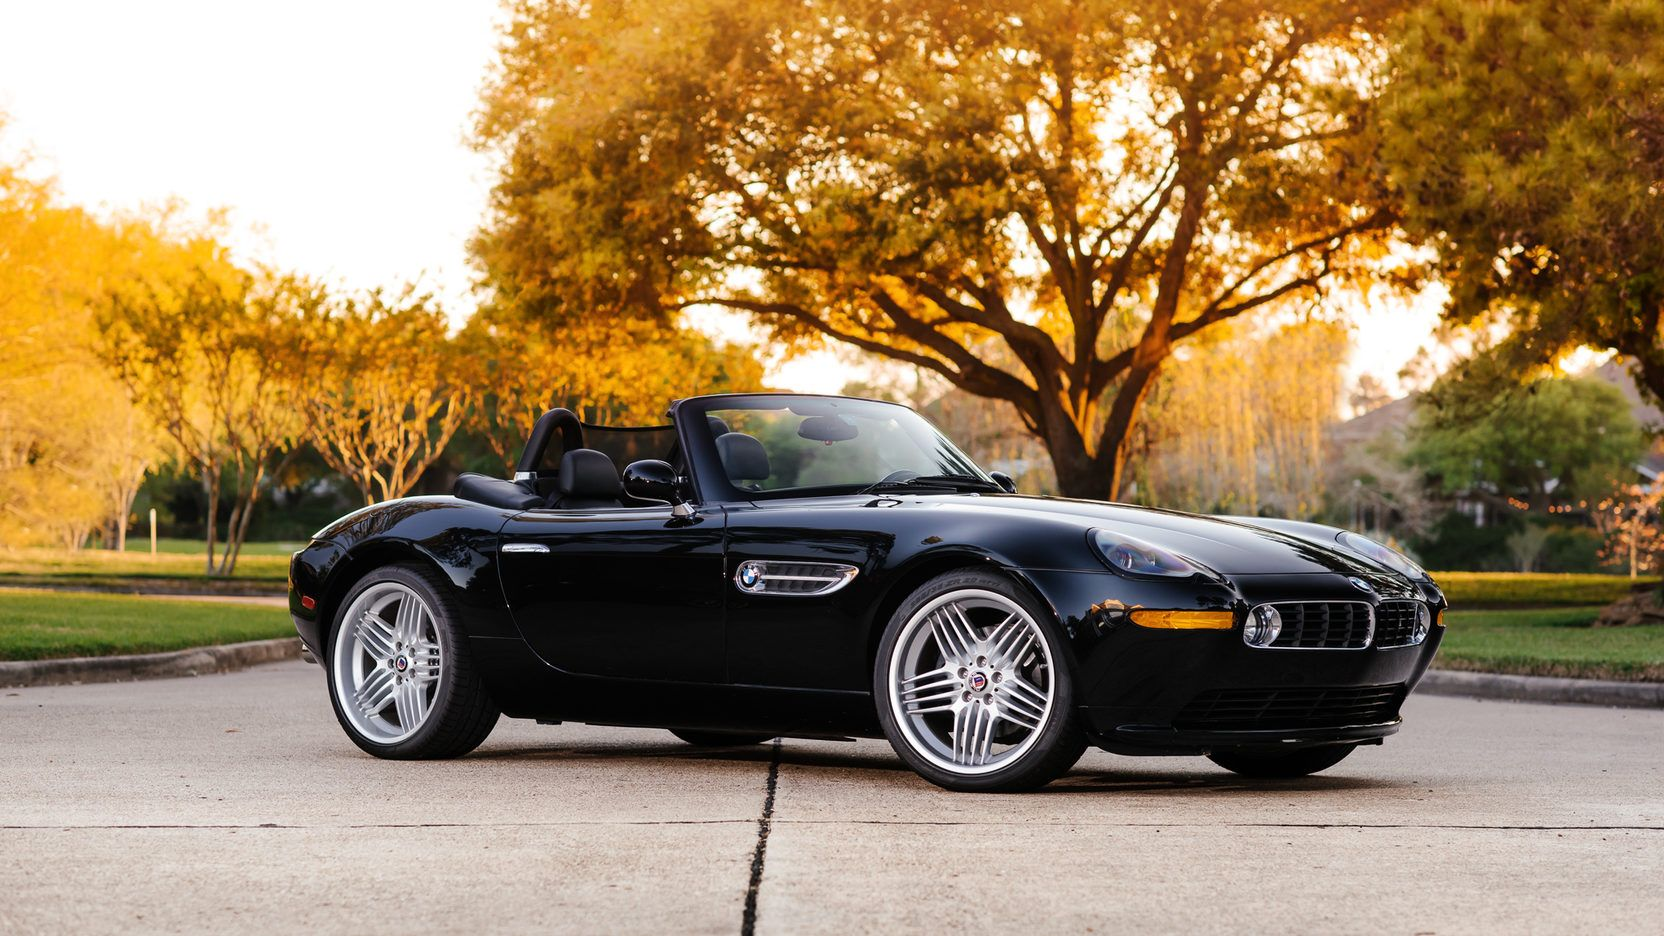 BMW Z Alpina Roadster Offered For Sale At Mecum Houston - Bmw alpina roadster for sale